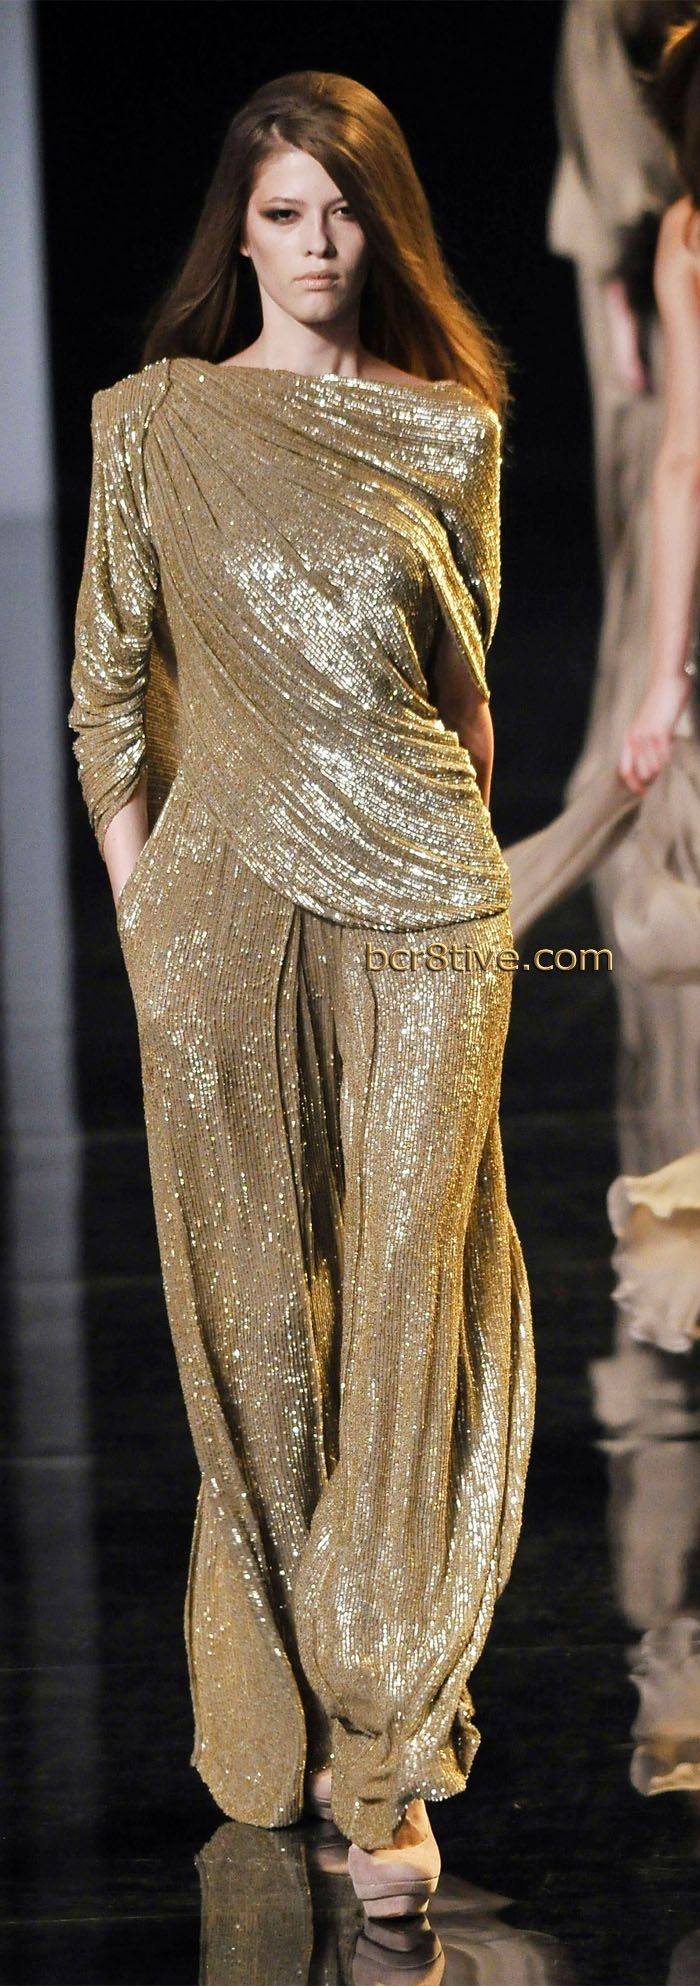 Elie Saab Fall Winter 2010 Haute Couture